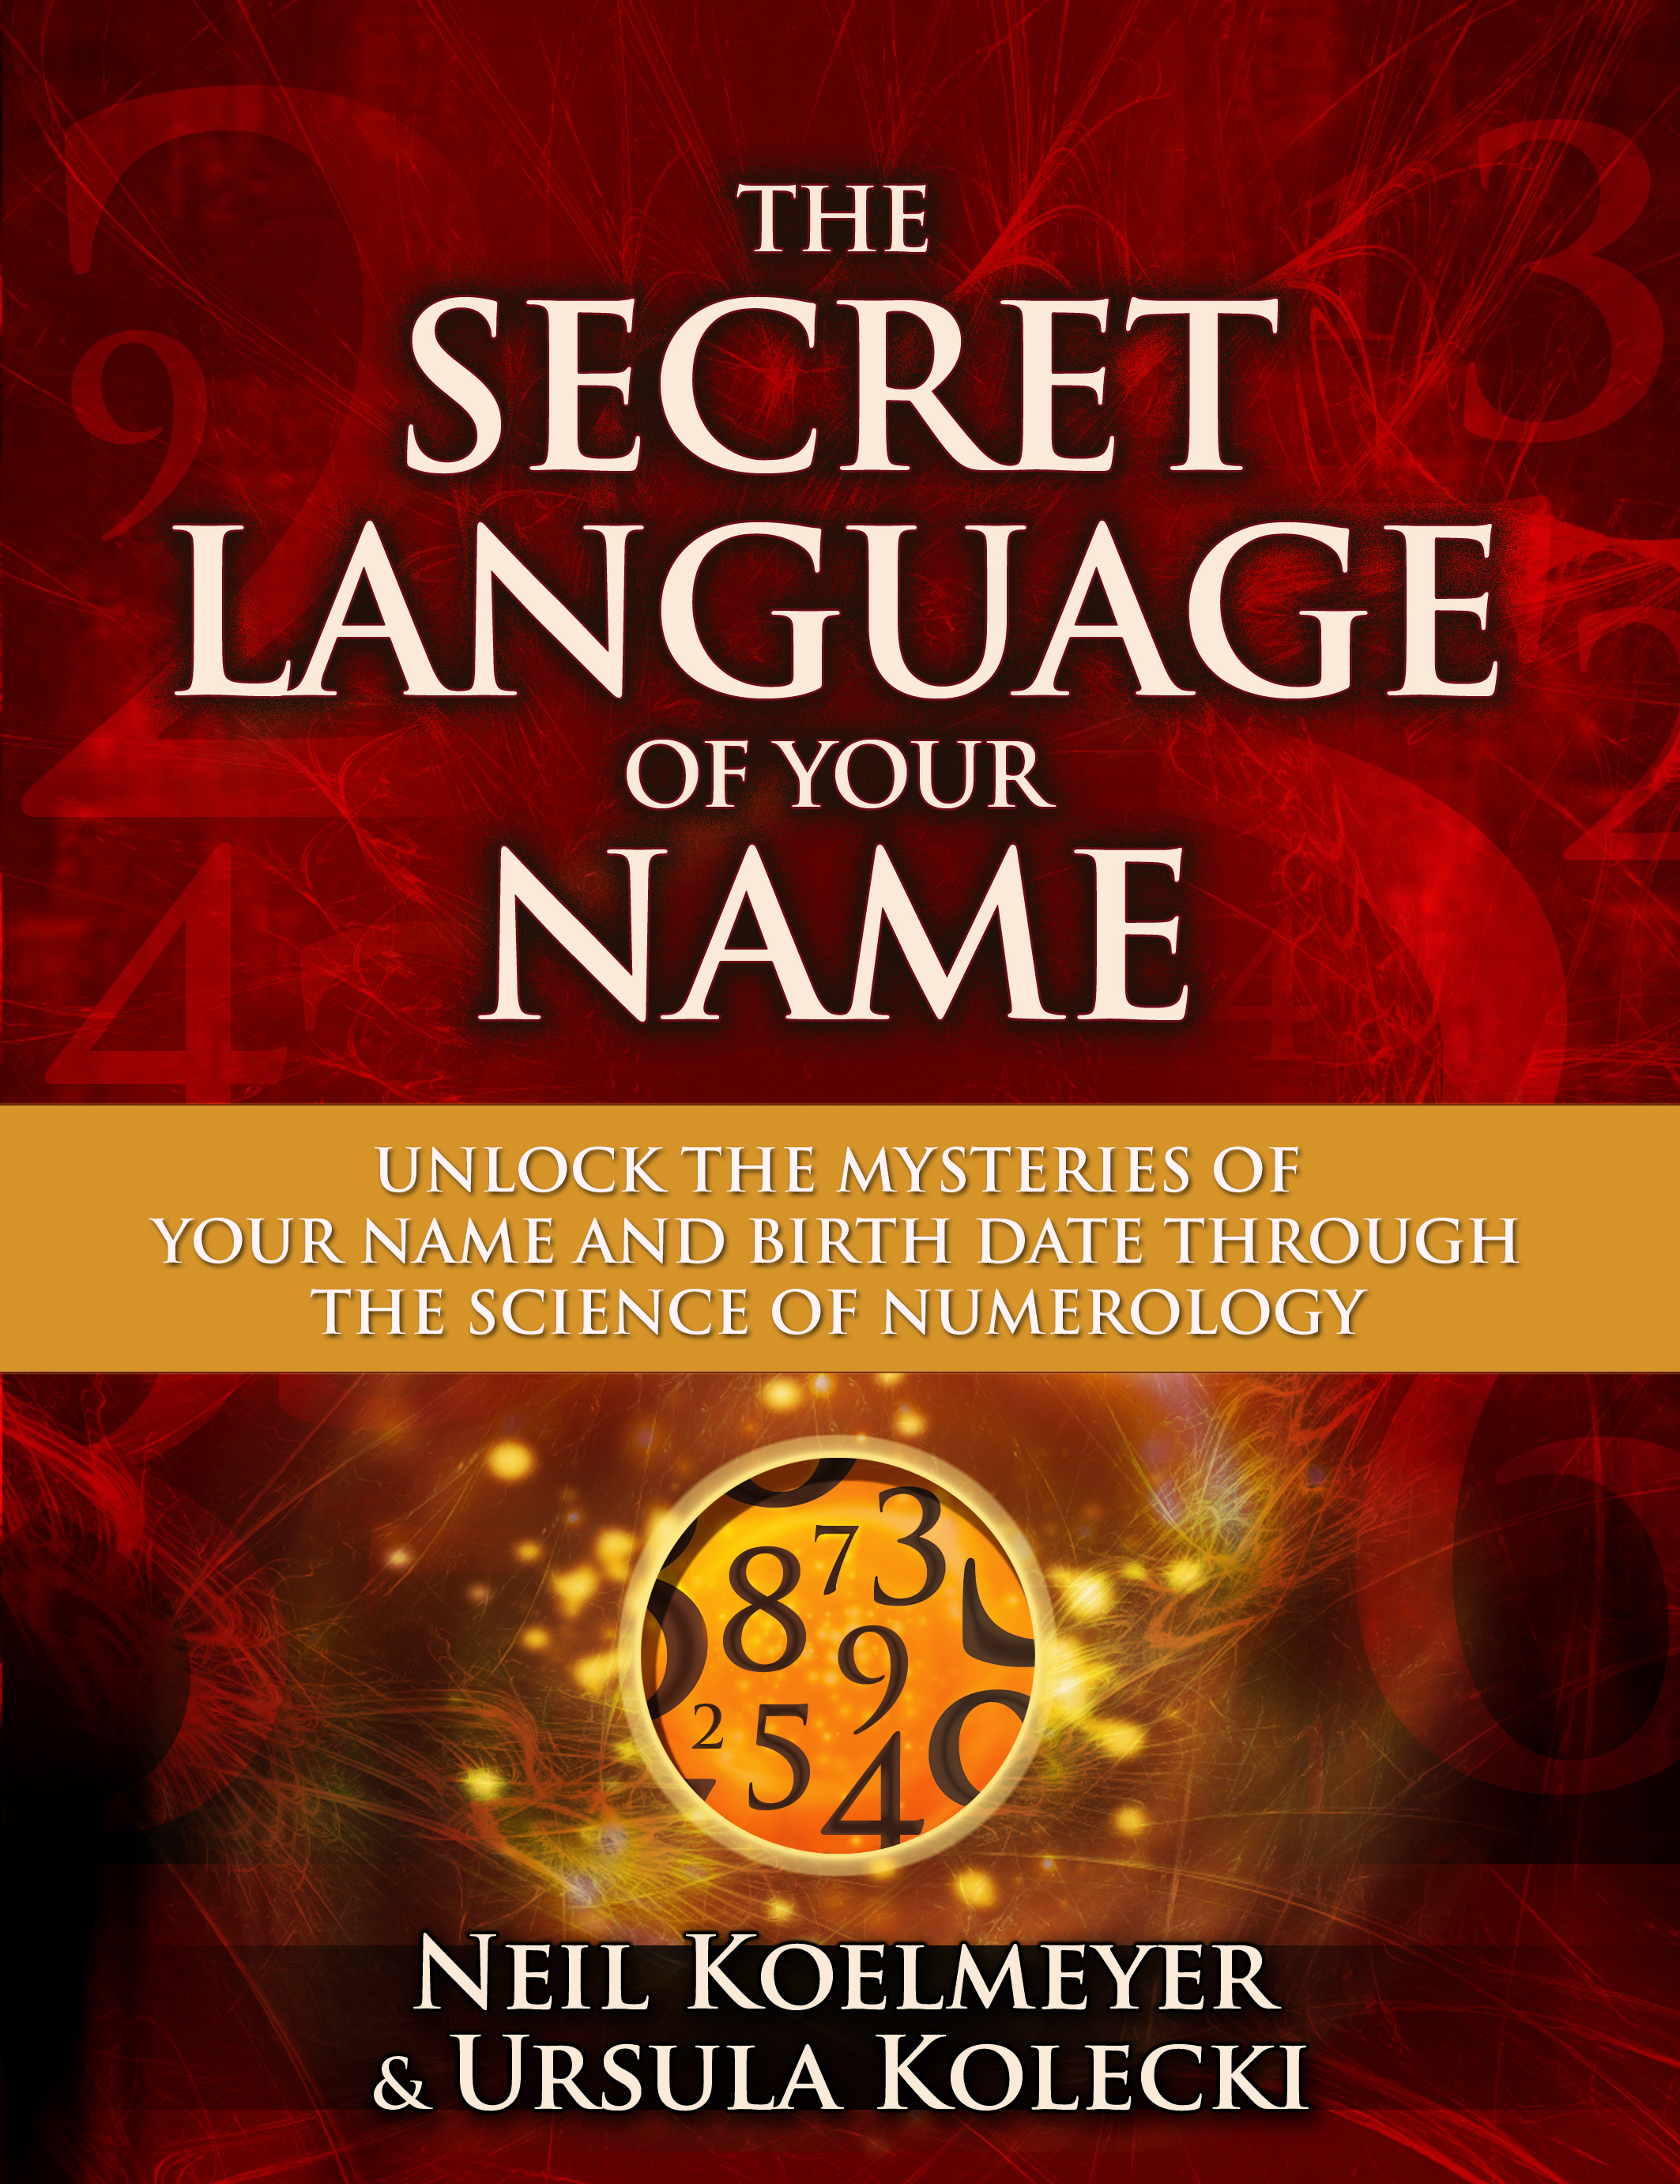 The Secret Language Of Your Name Book By Neil Koelmeyer Ursula